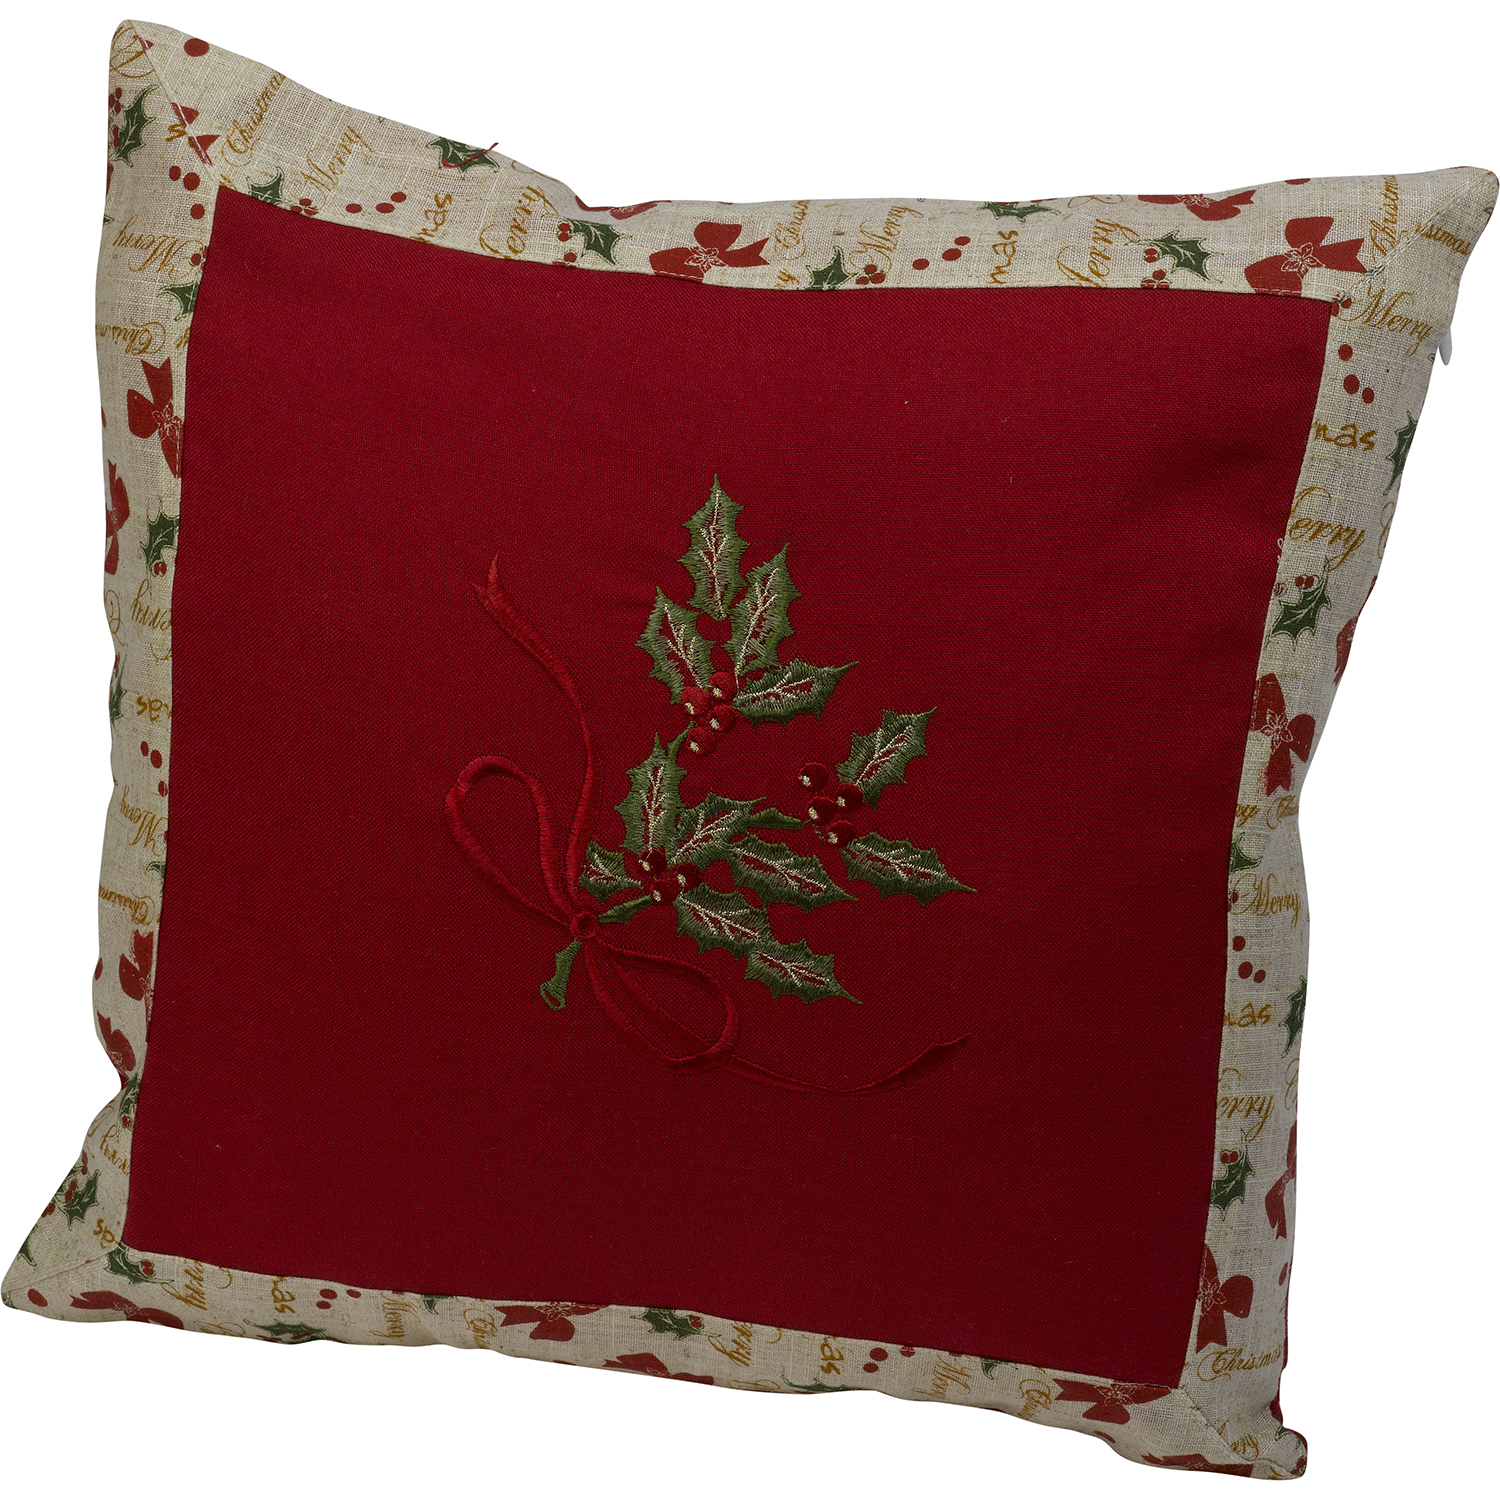 Cushion Covers Christmas Festive Embroidered Christmas Cushion Cover Decorative